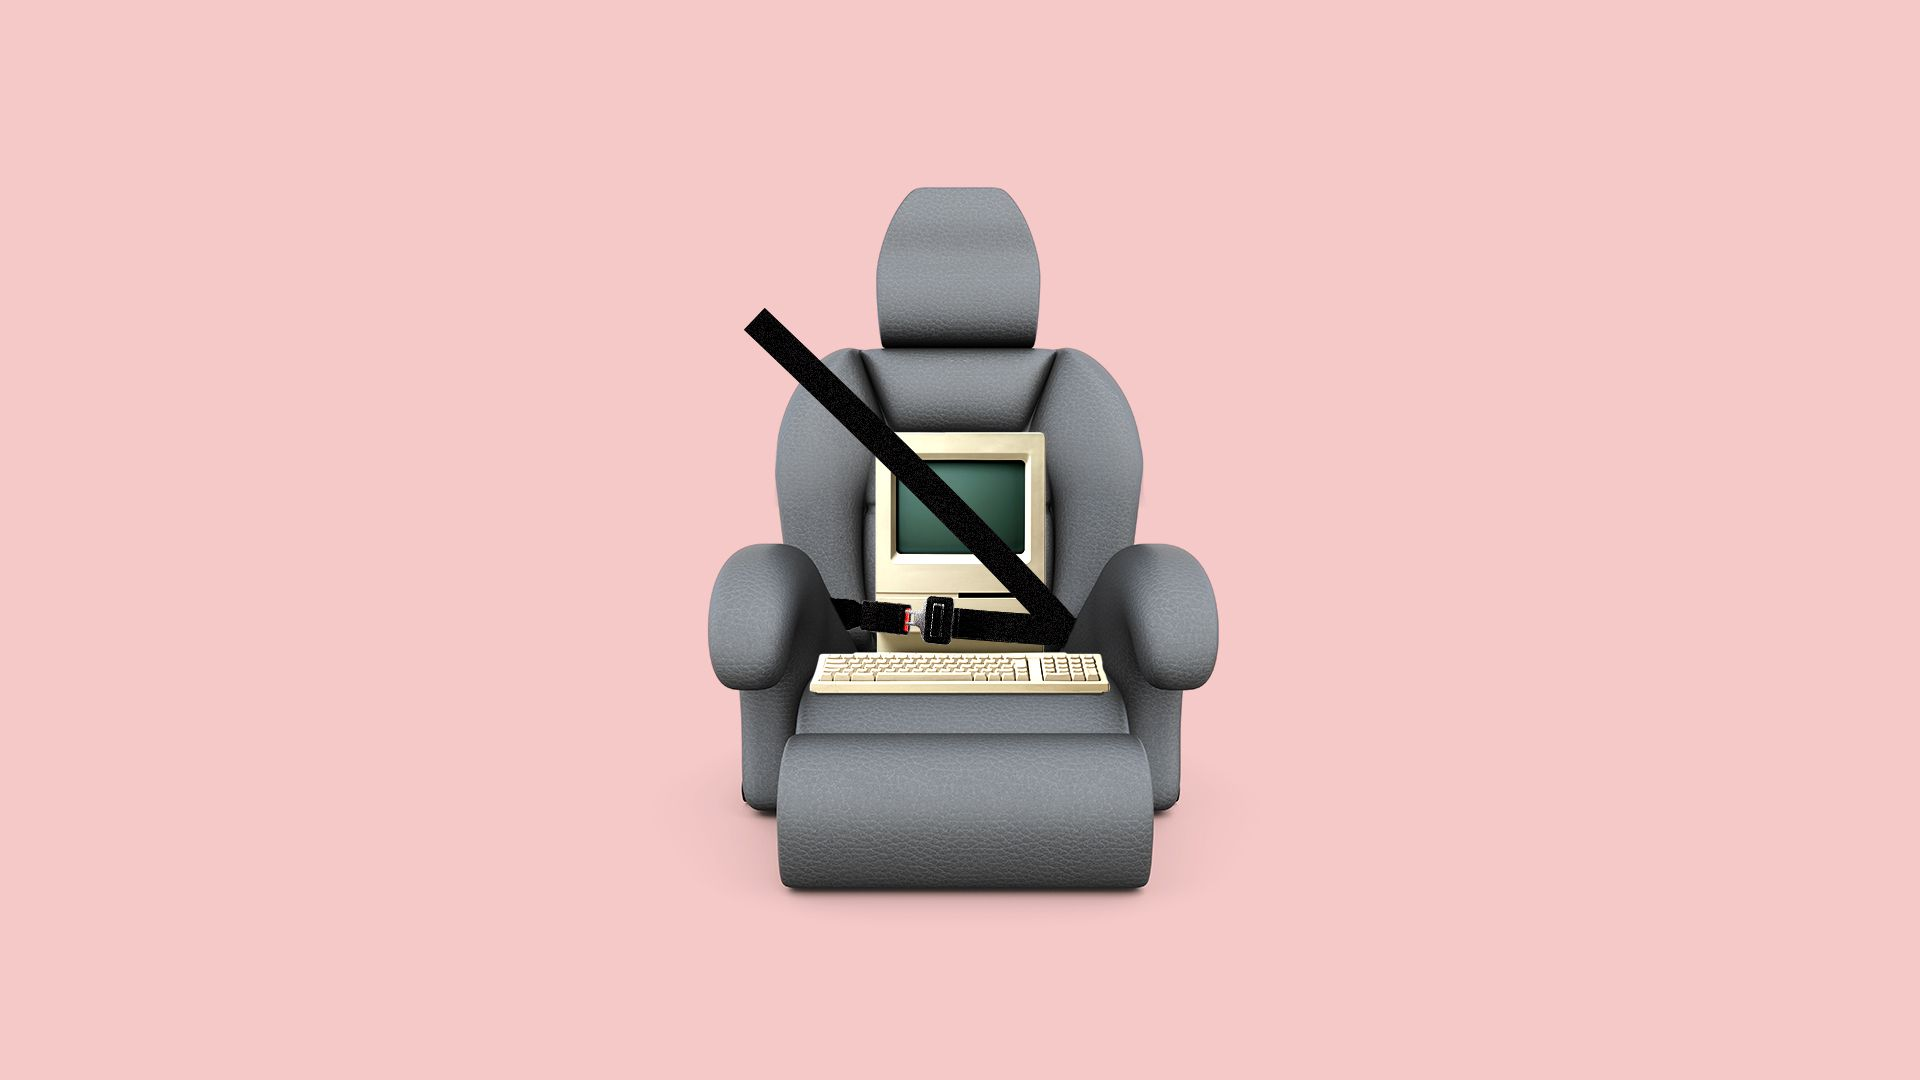 Illustration of a computer wearing a seat belt.